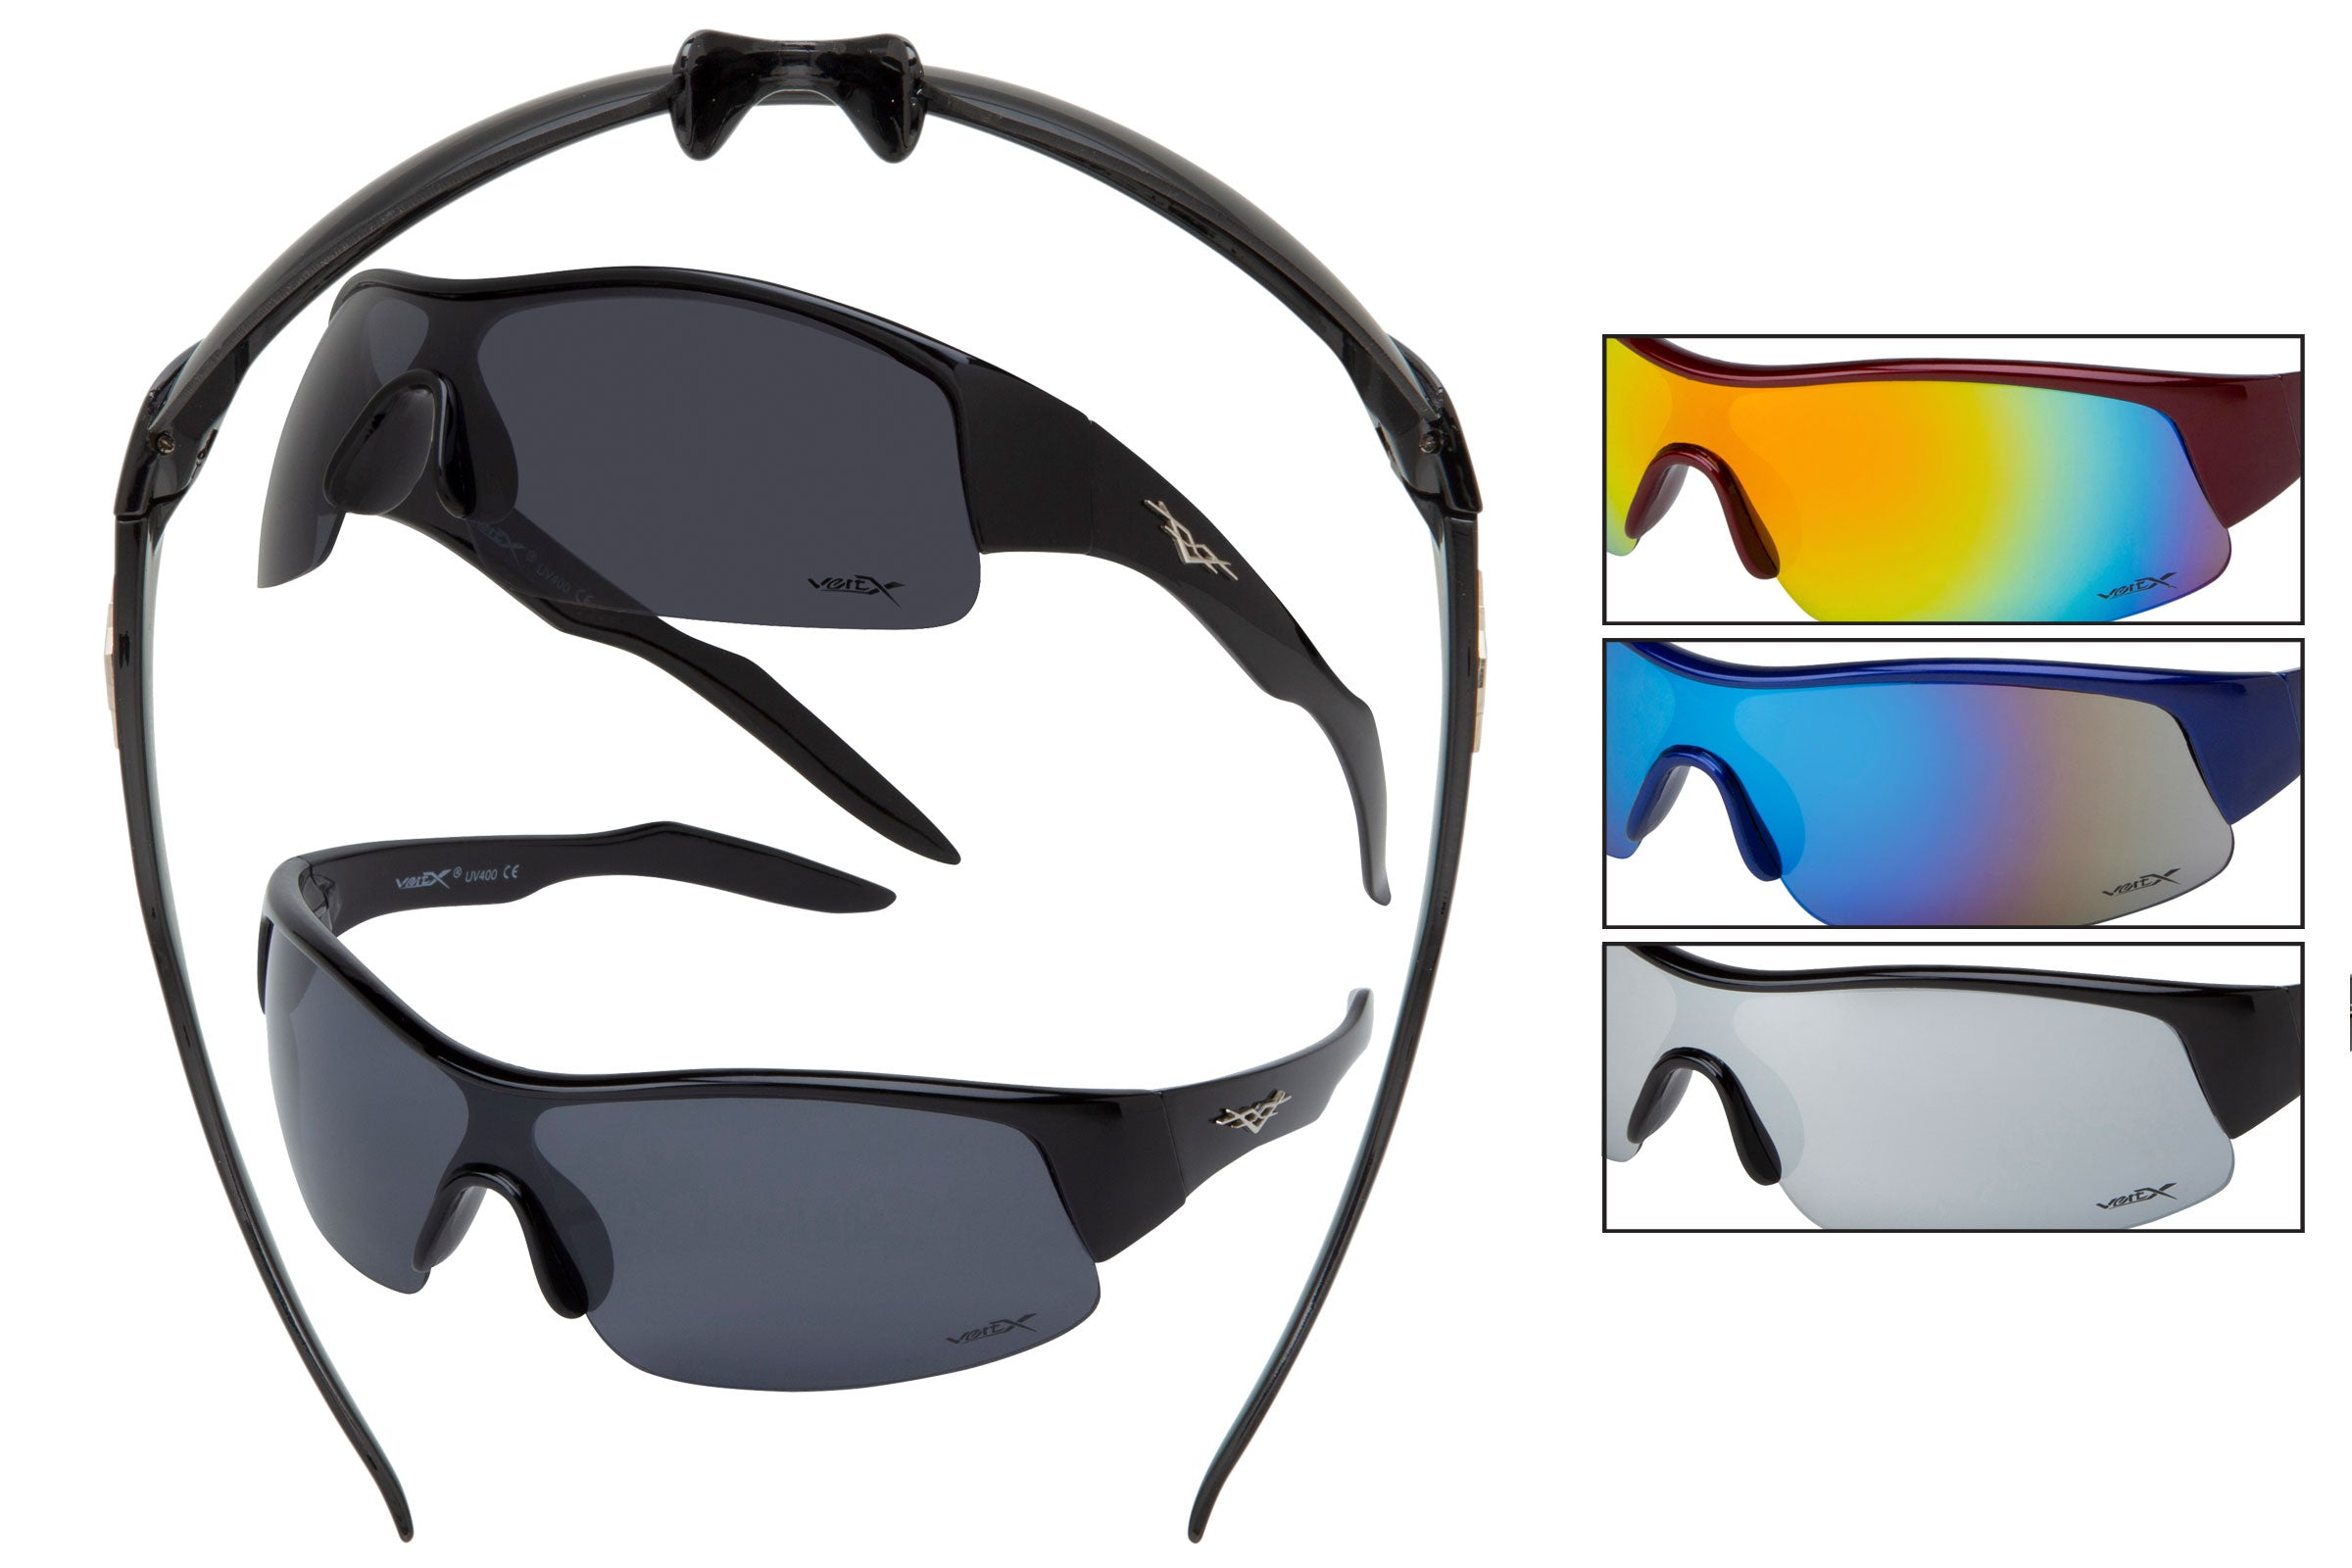 59105 - Men's PC Sports Wrap Sunglasses